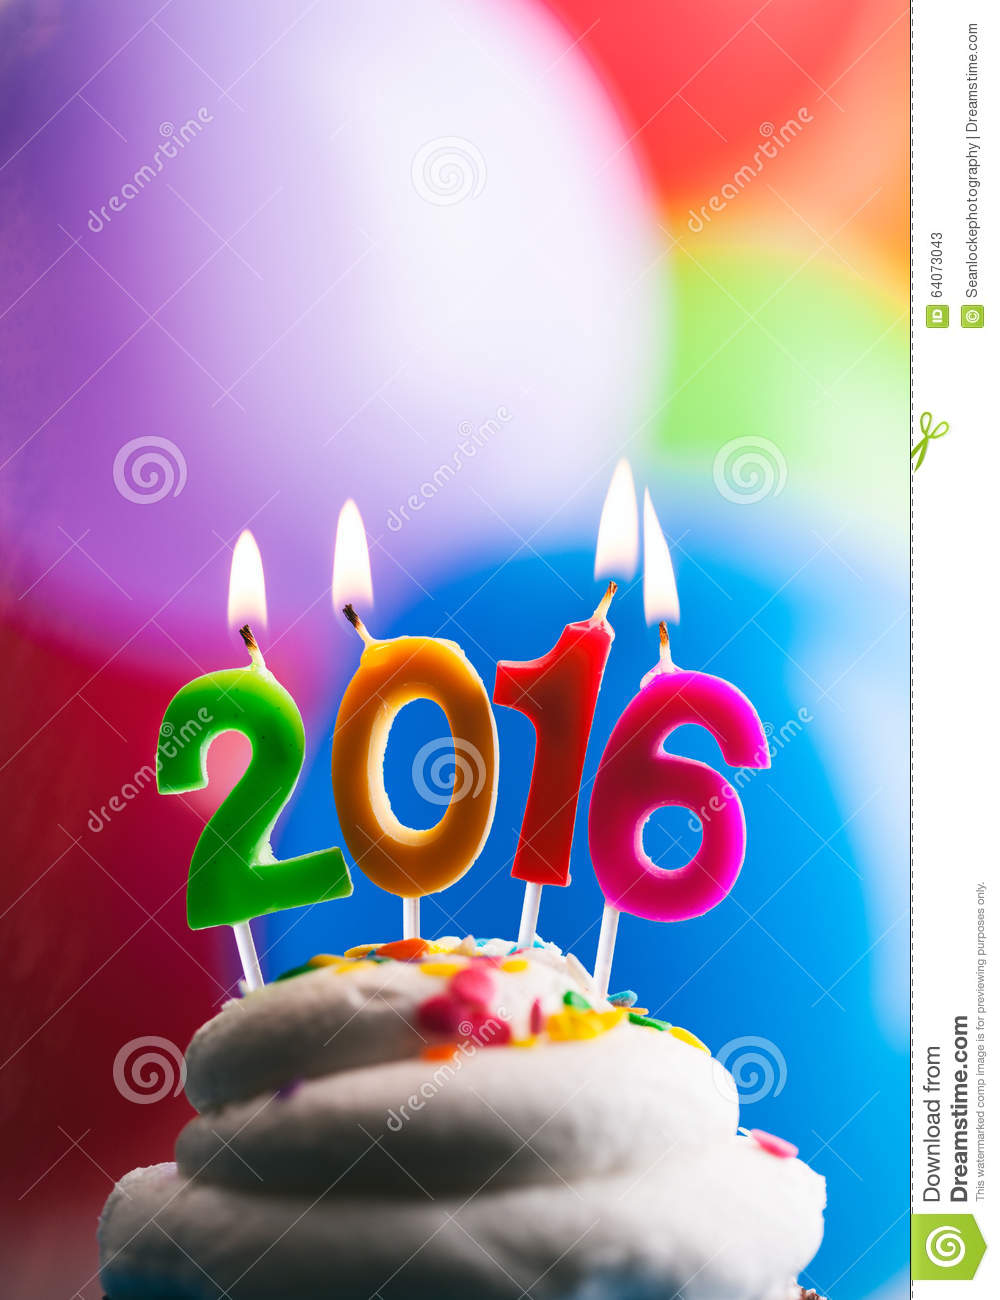 Happy New Year 2016 Birthday Candles On Cake Stock Image   Image of     Download Happy New Year 2016 Birthday Candles On Cake Stock Image   Image  of balloon